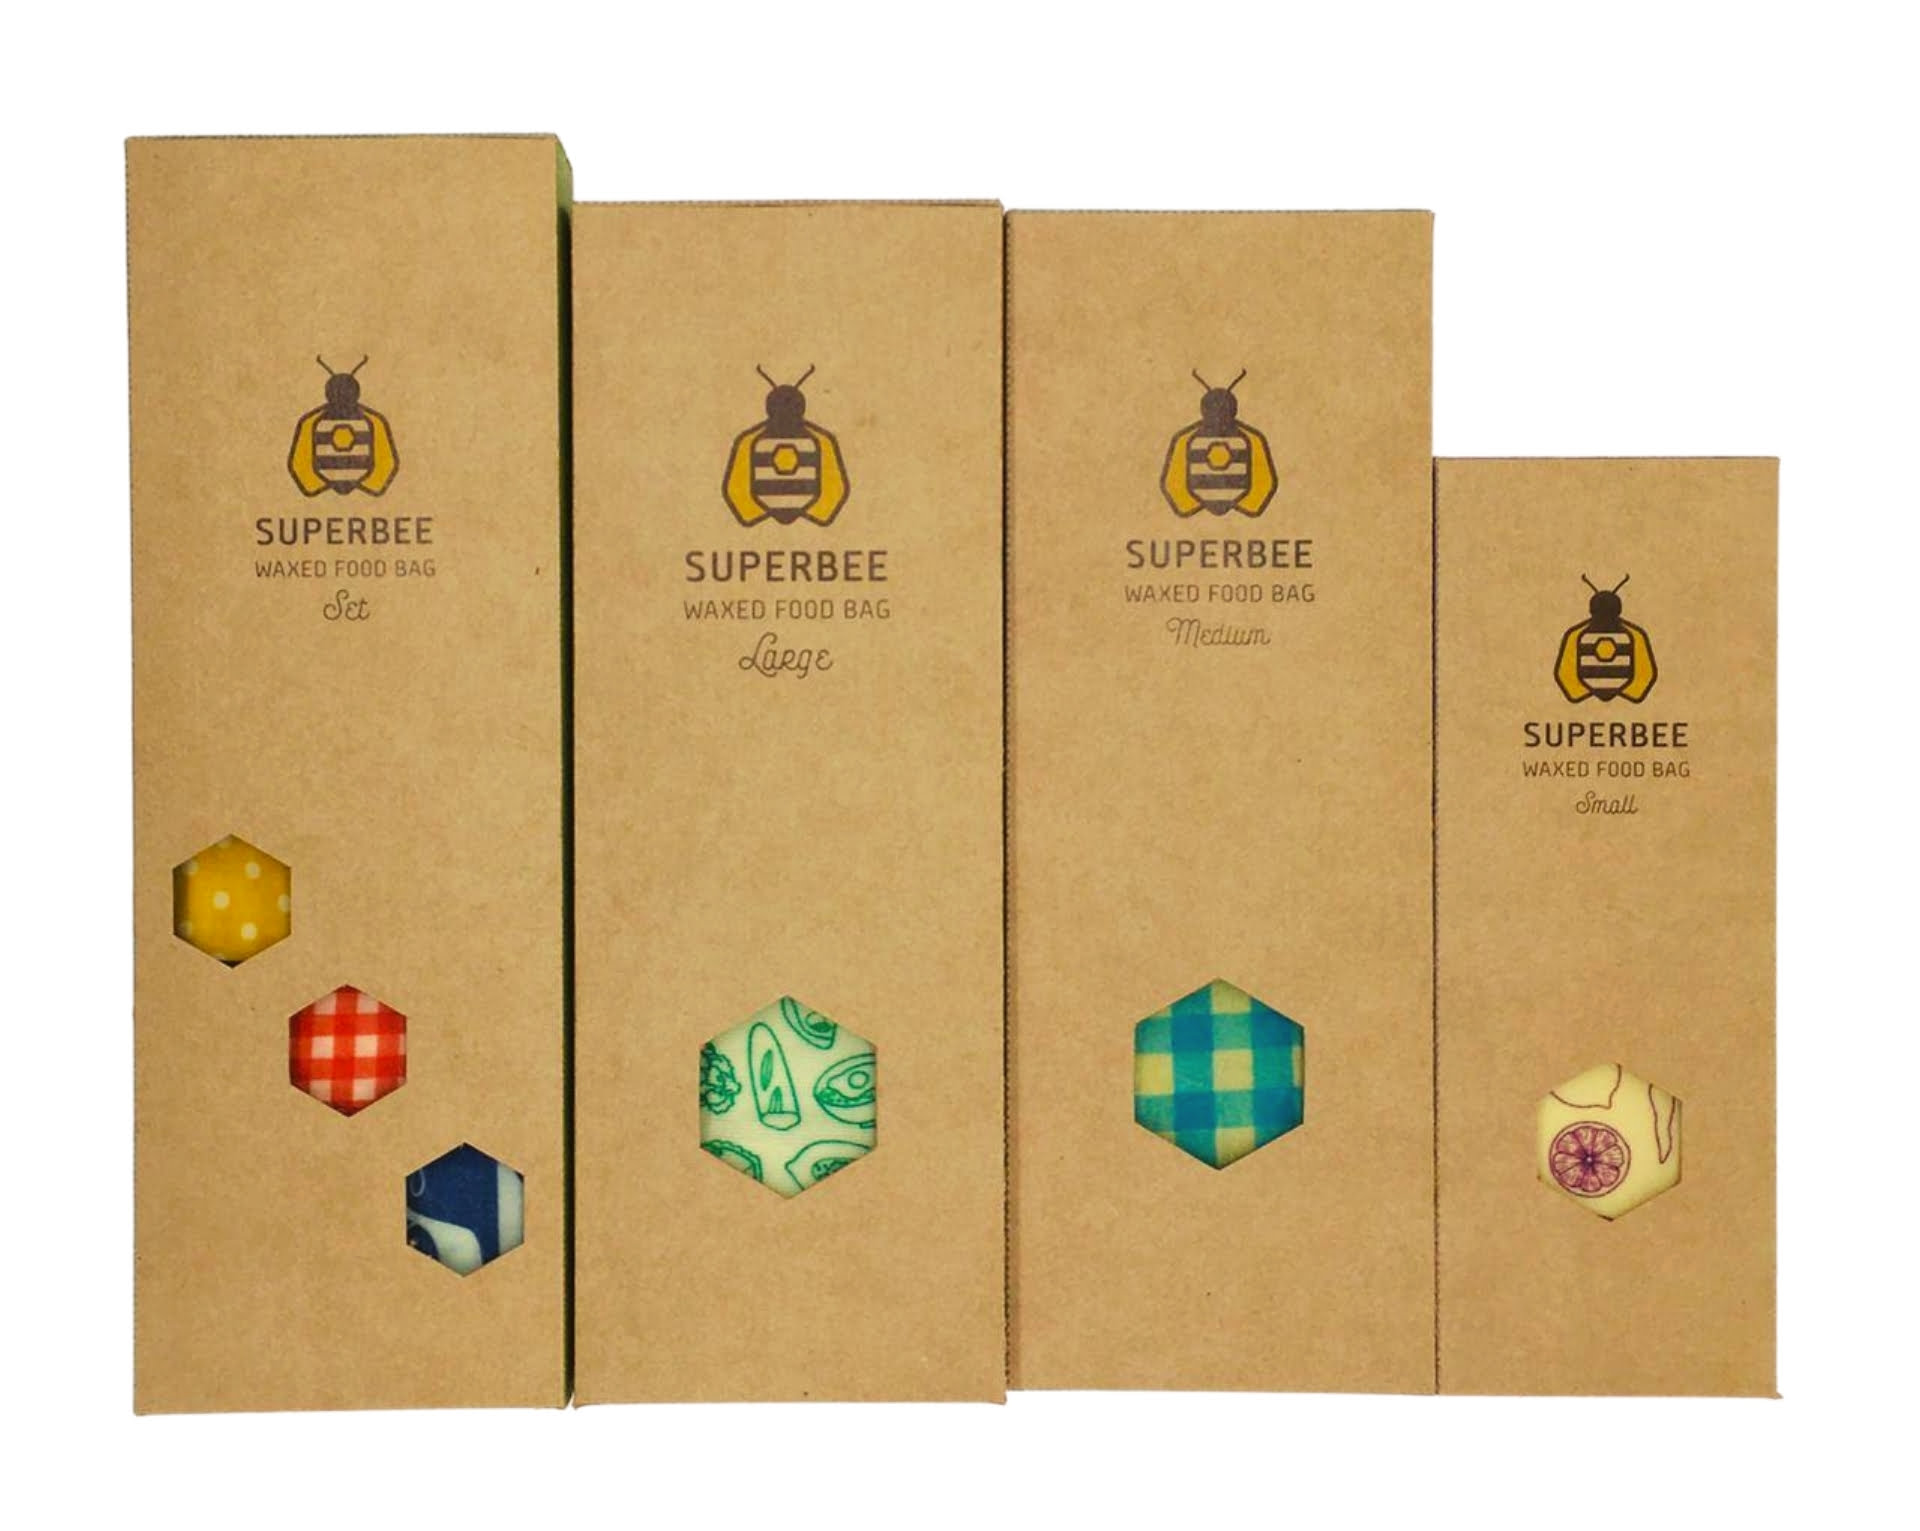 Waxed Food Bags in their retail ready packaging